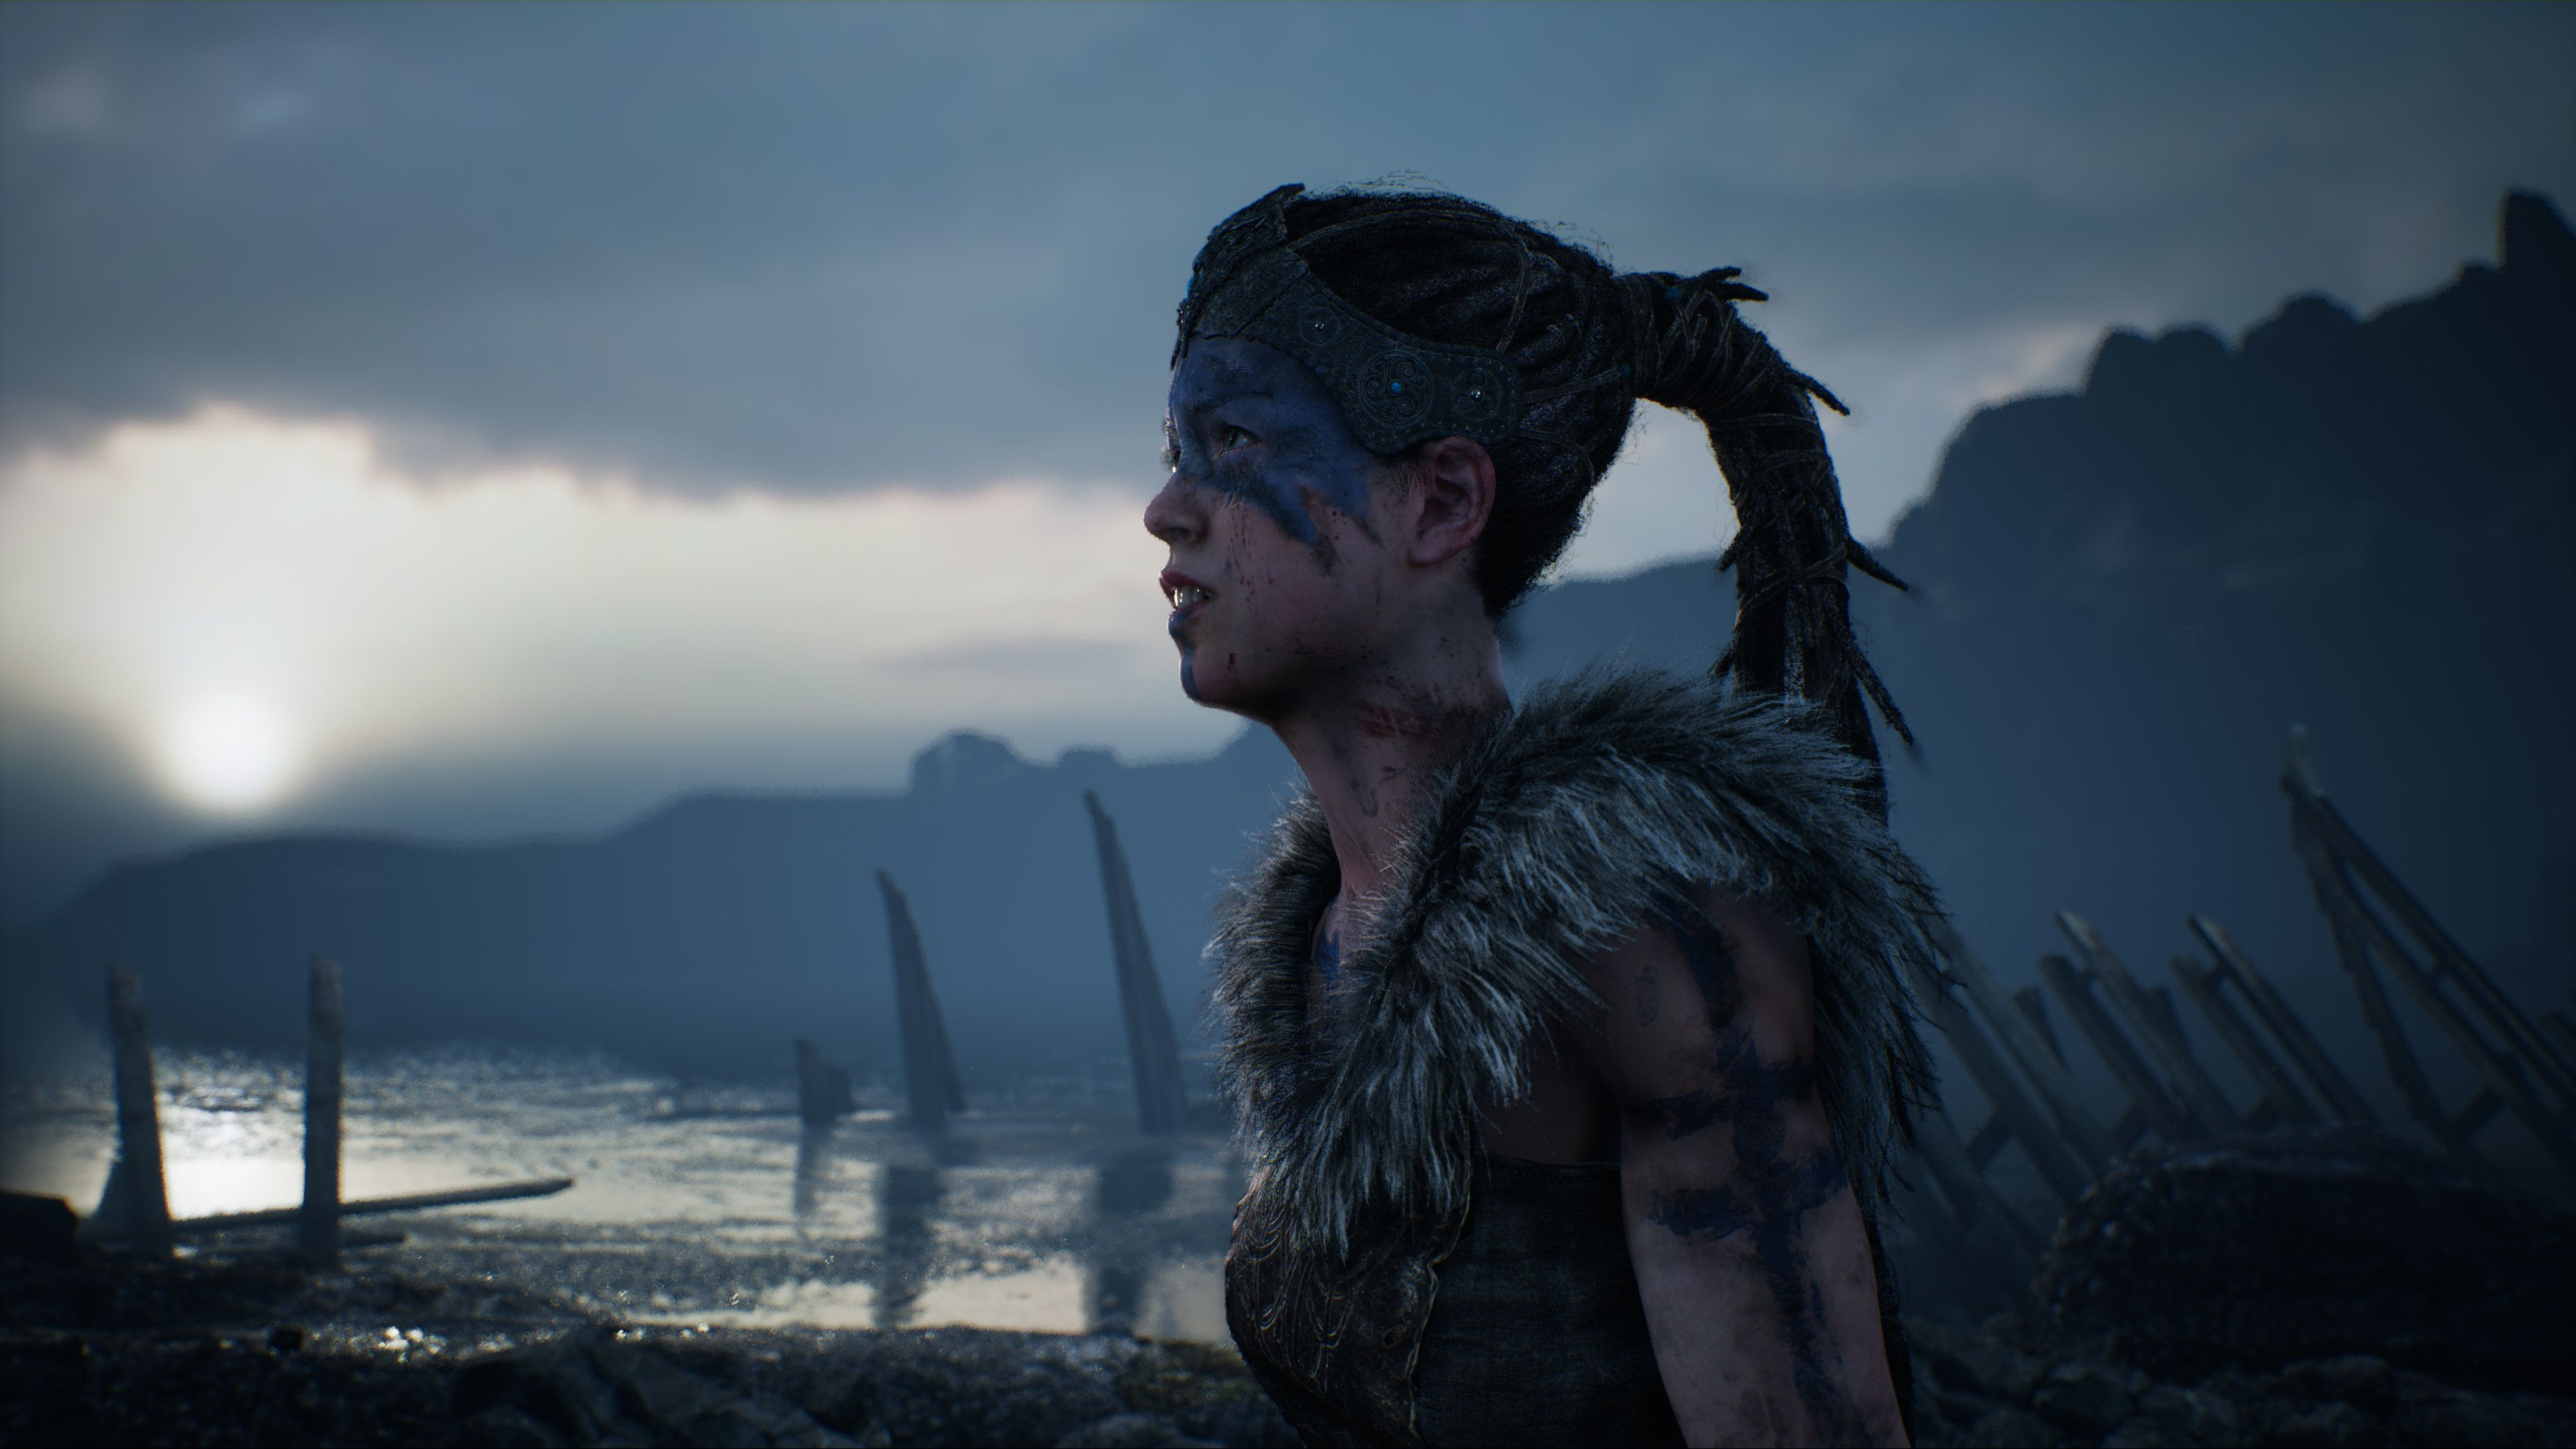 The Stunning Hellblade: Senua's Sacrifice Won Big At The BAFTA Game